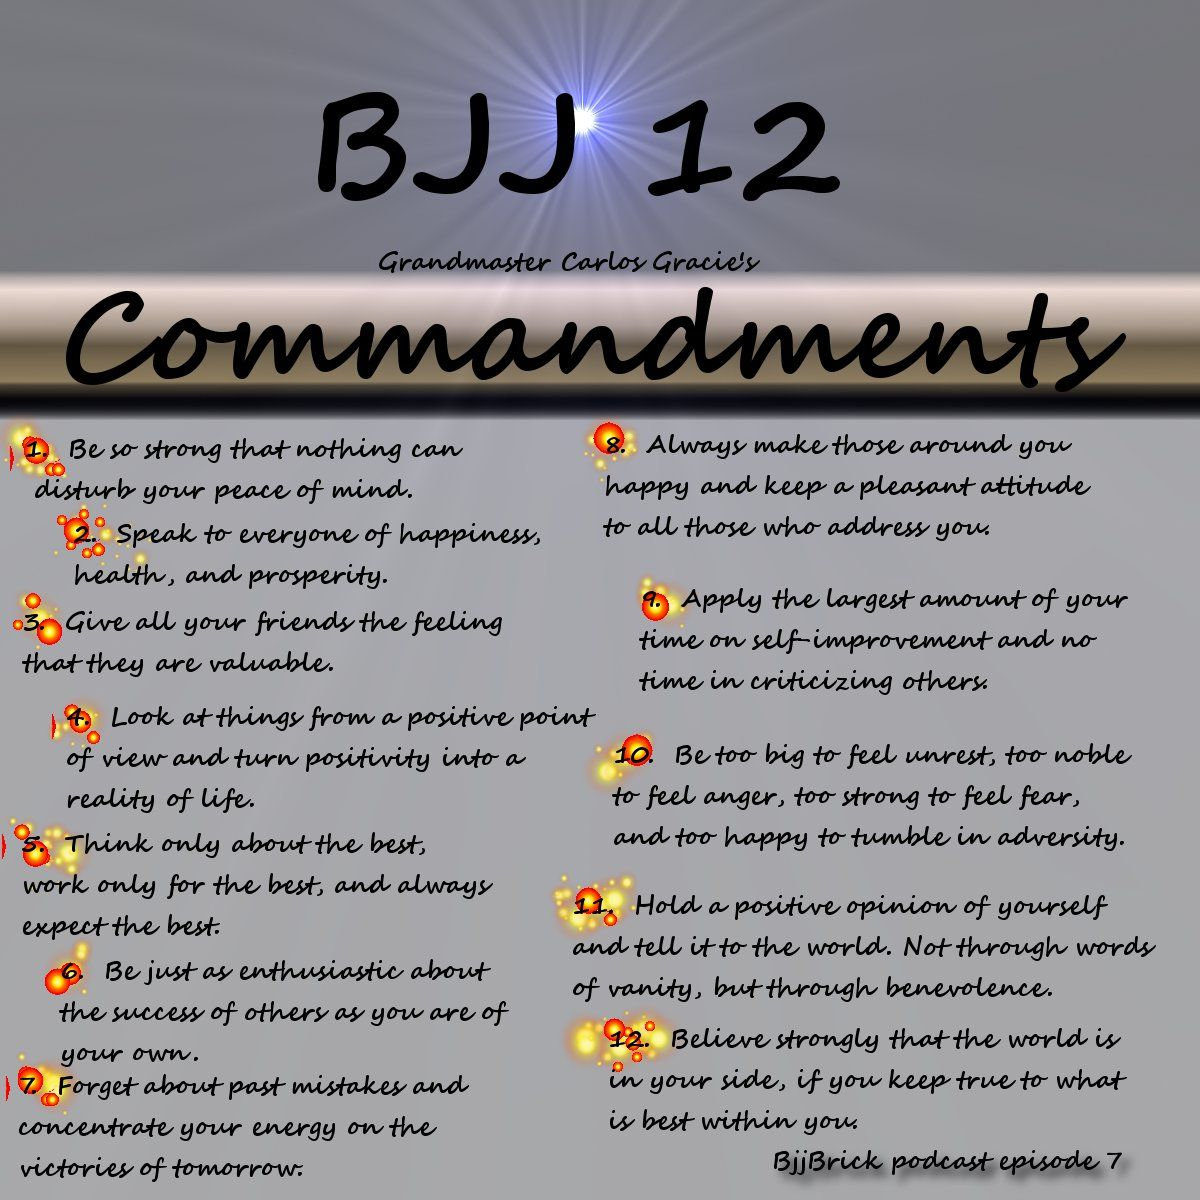 Jiu Jitsu Quotes 12 Commands Of Bjj  Bjj 4 Life  Pinterest  Brazilian Jiu Jitsu